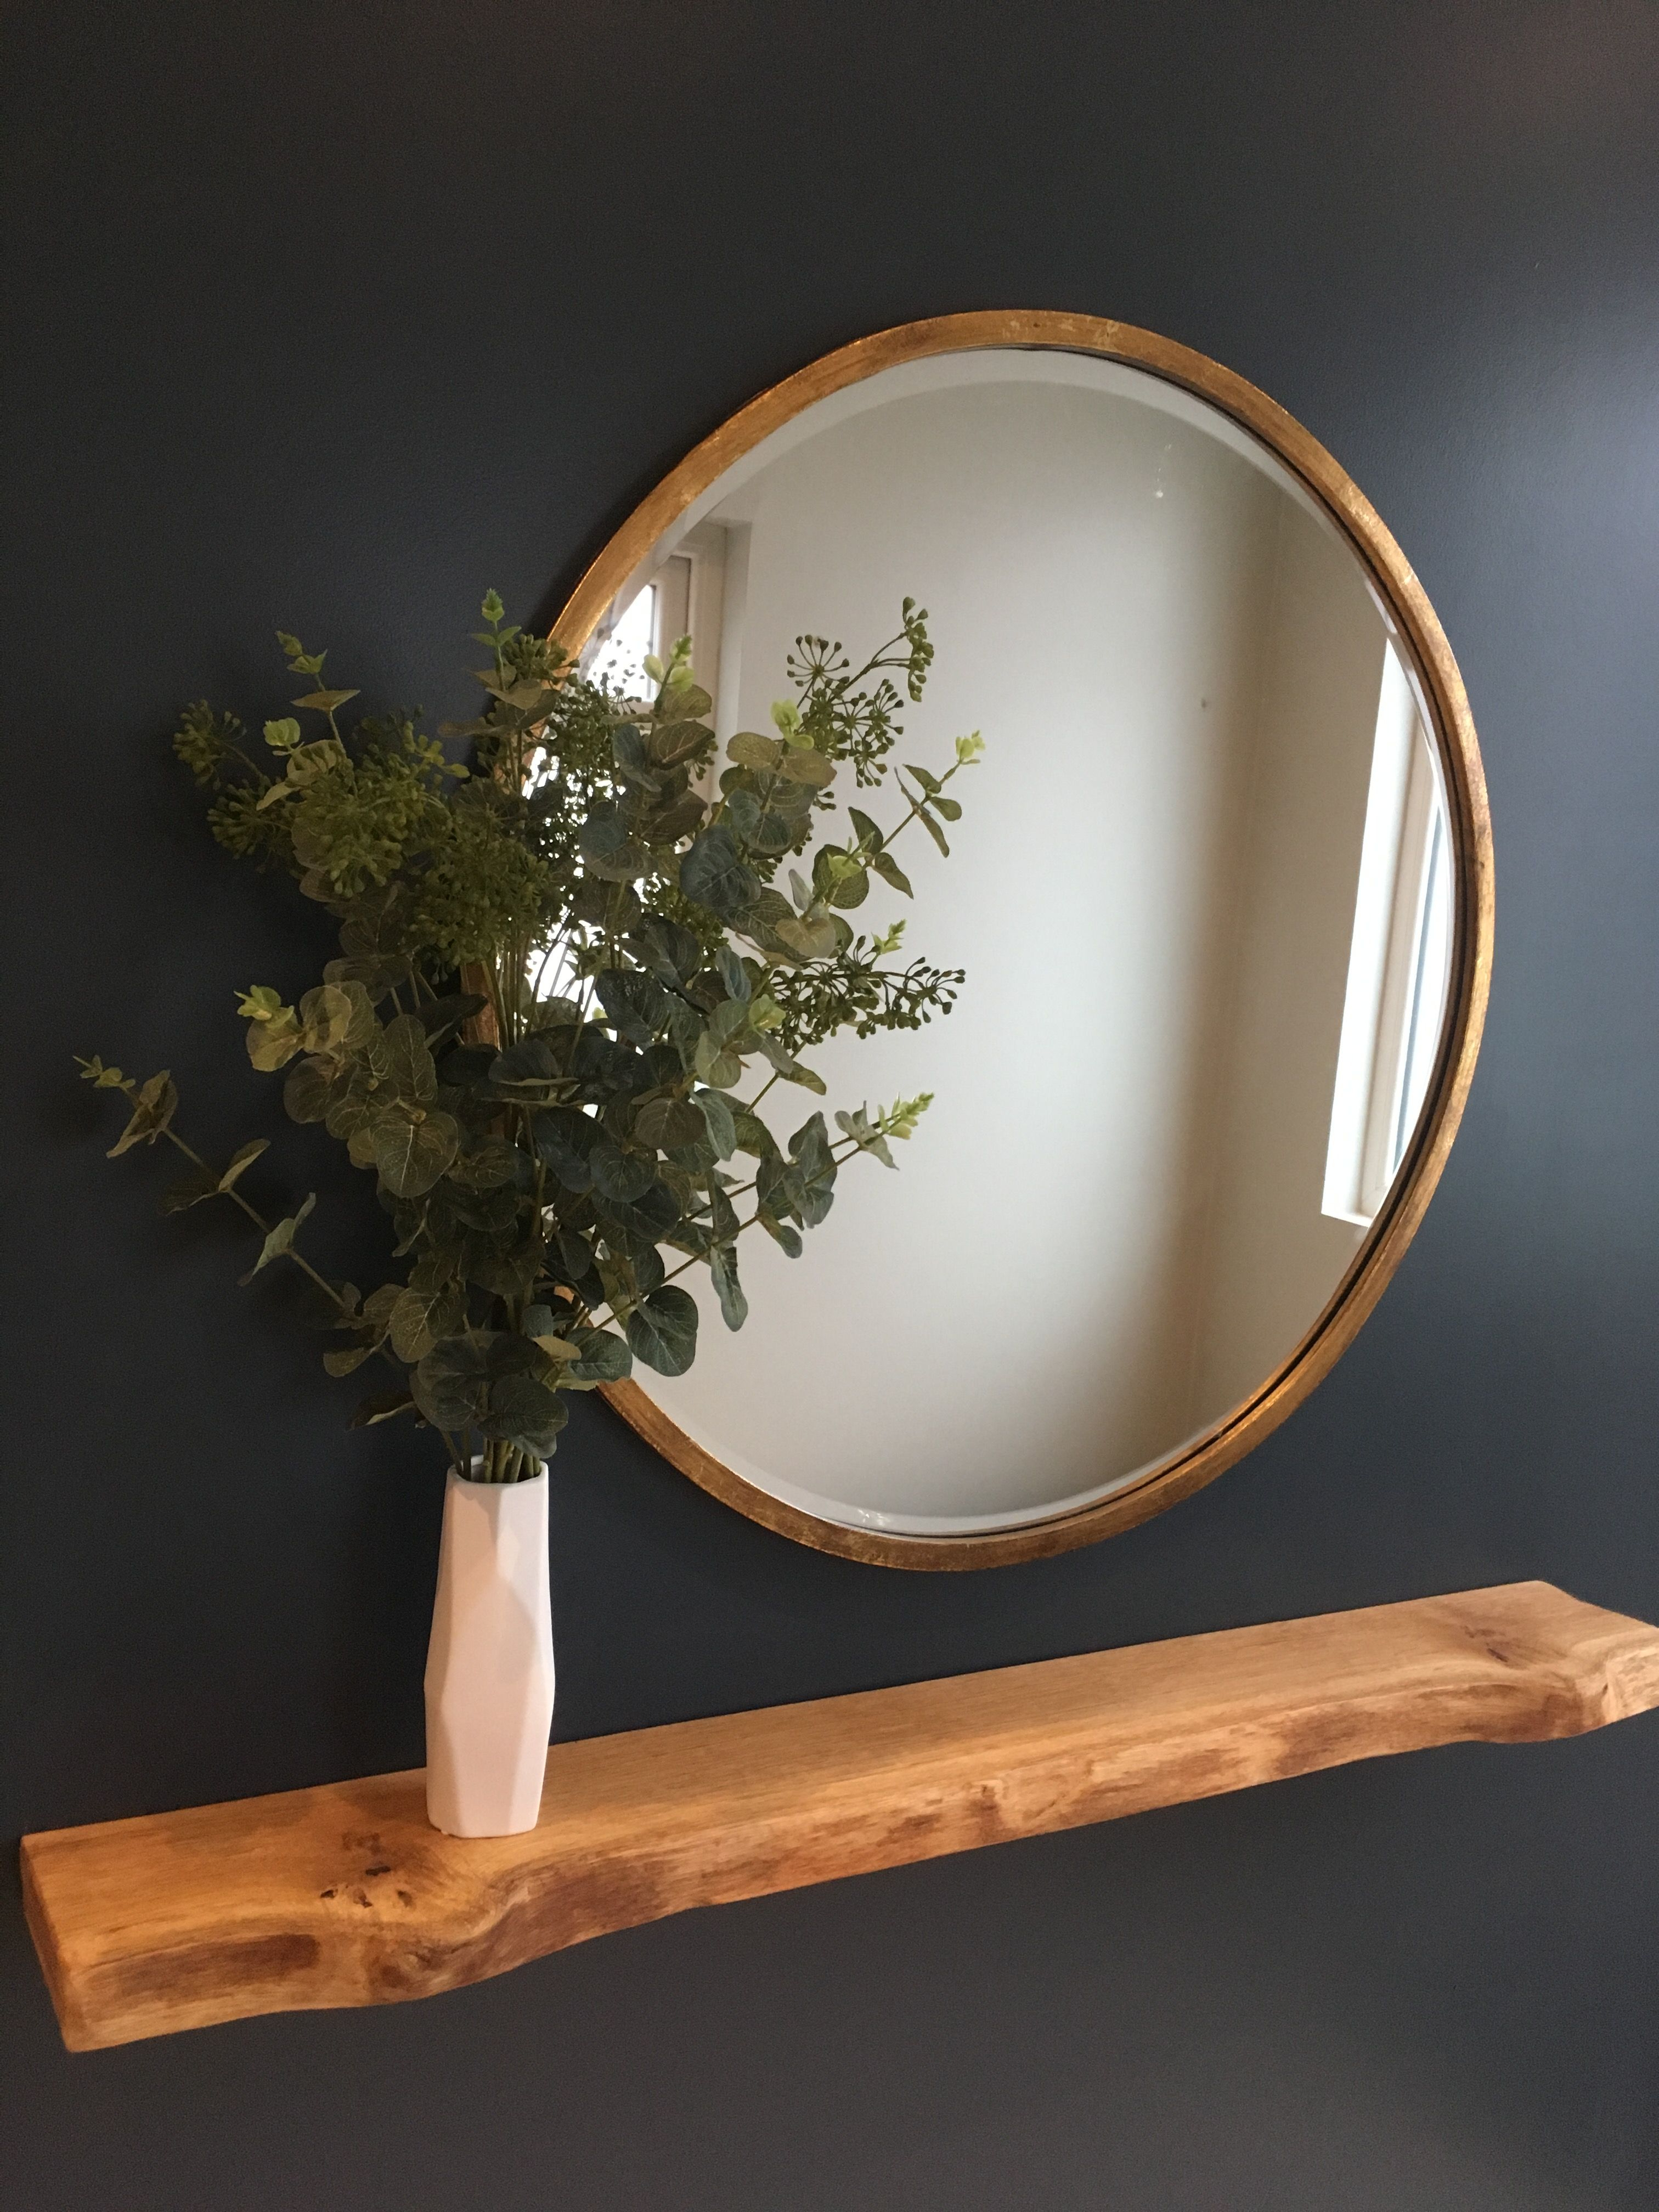 Ikea Round Wall Mirrors Inside Newest Bronze Round Mirror With Eucalyptus Leaves And A Floating Oak Shelf (View 17 of 20)